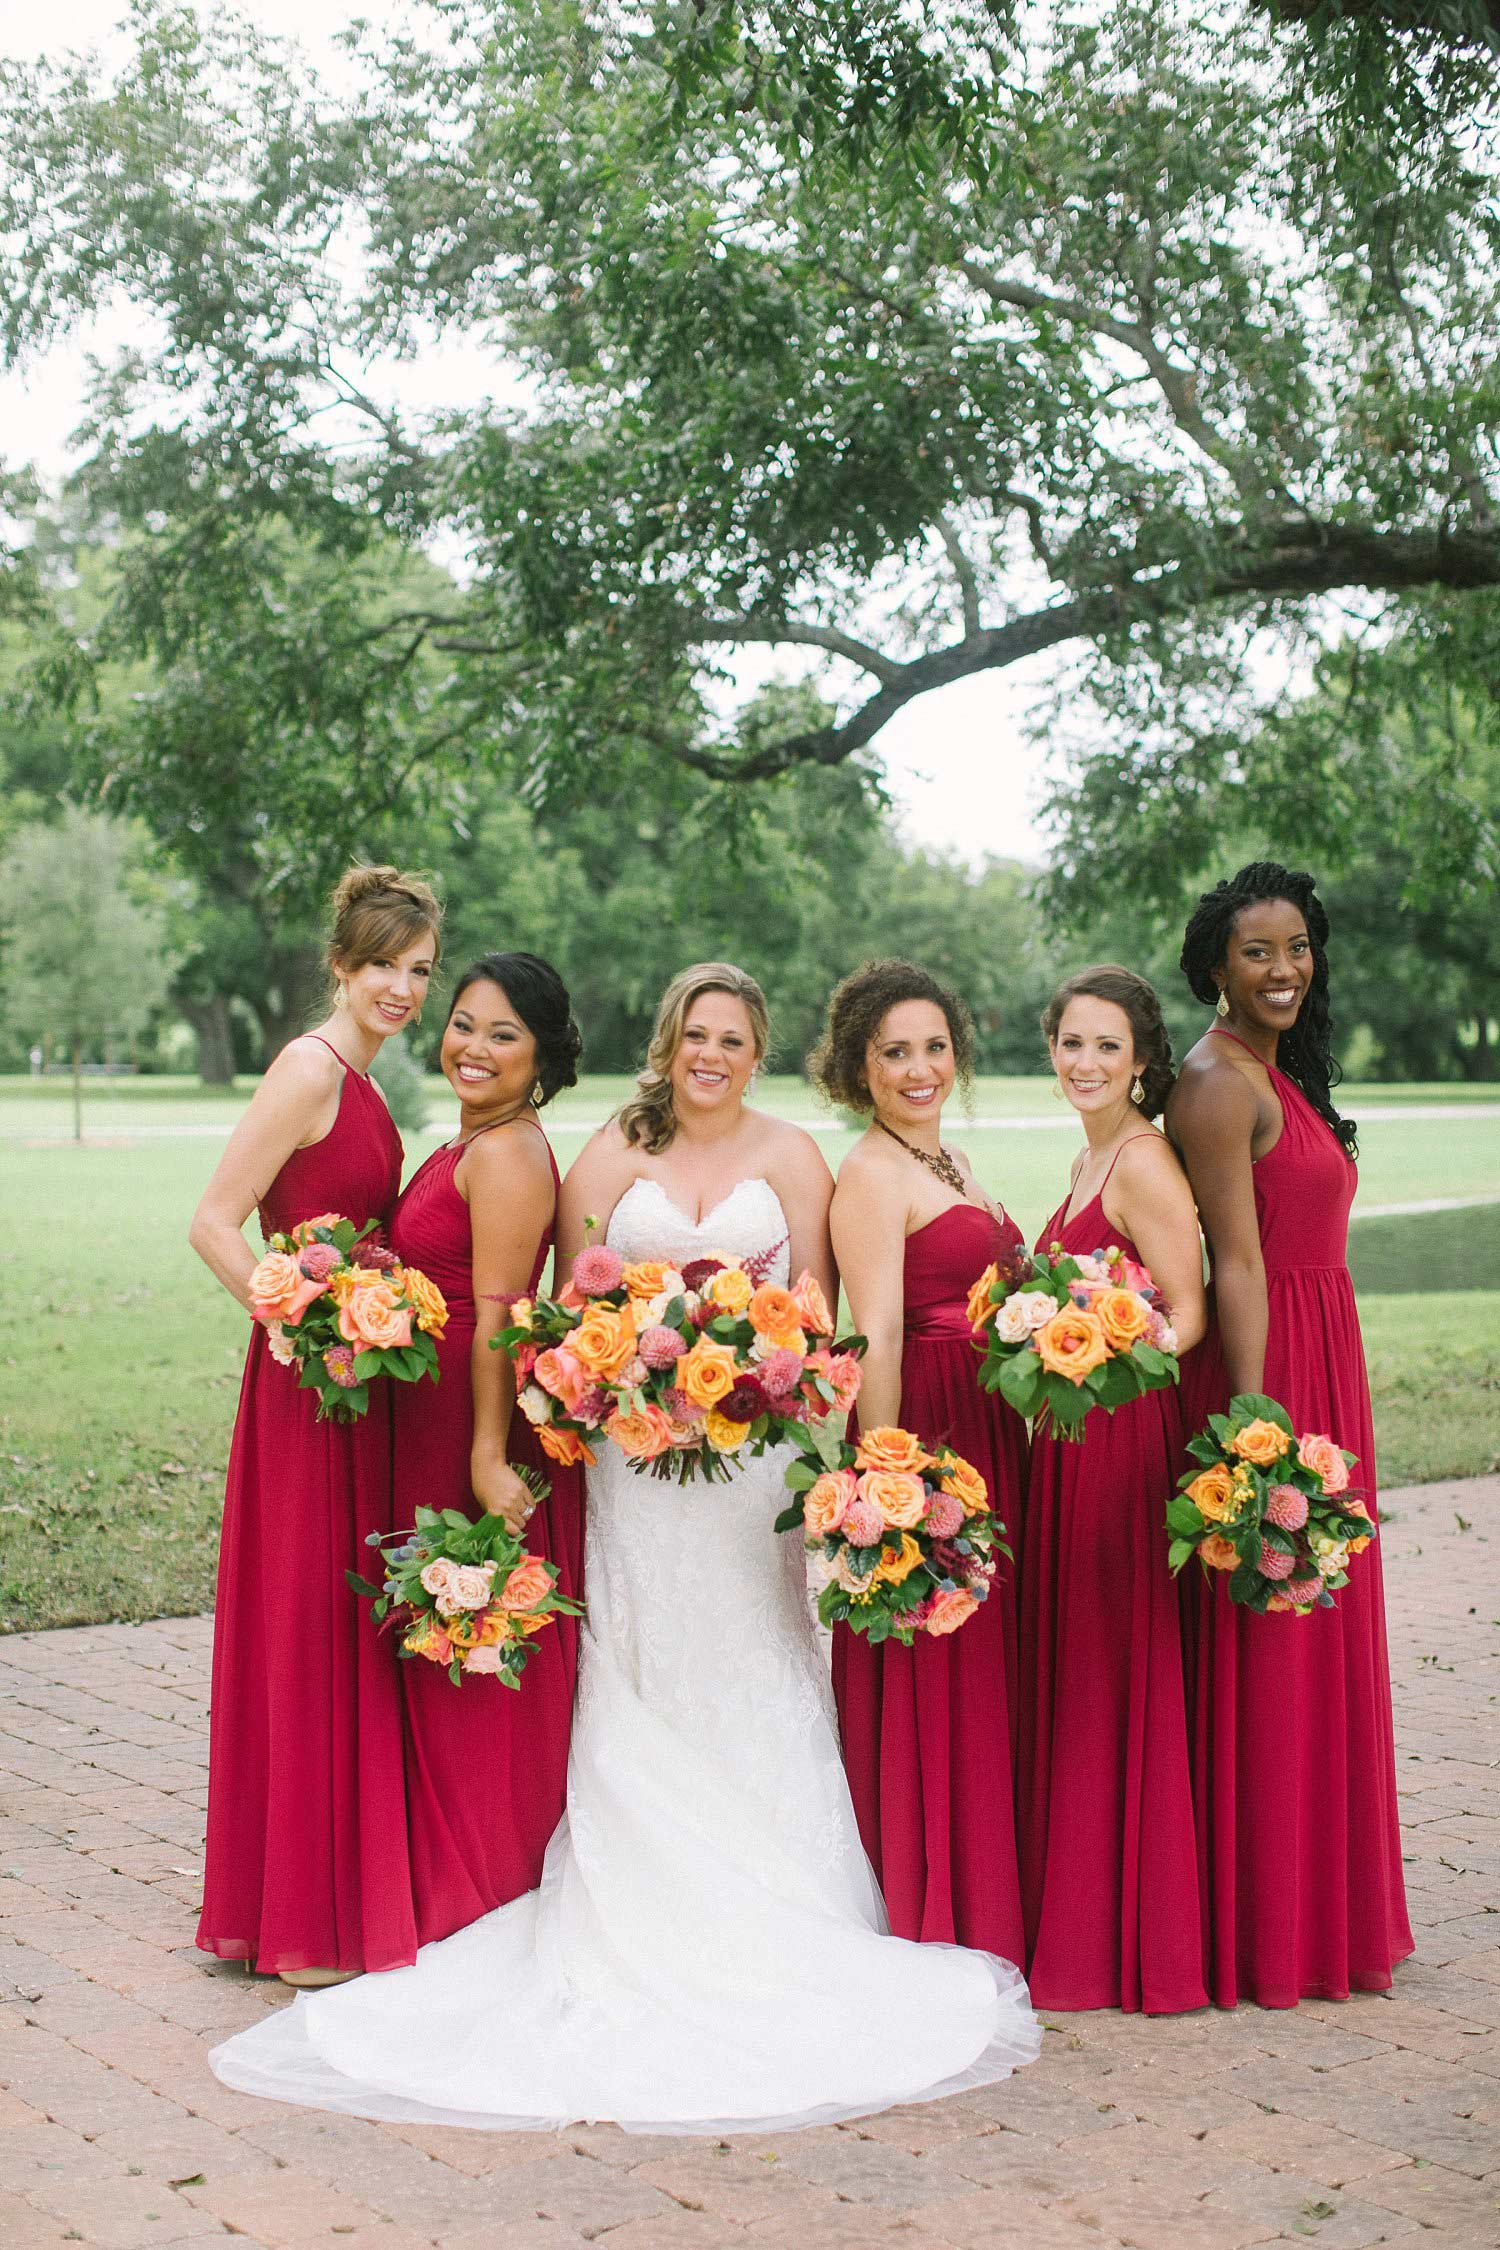 Bridesmaids with burgundy dresses and colorful flowers at the Orchard in Azle